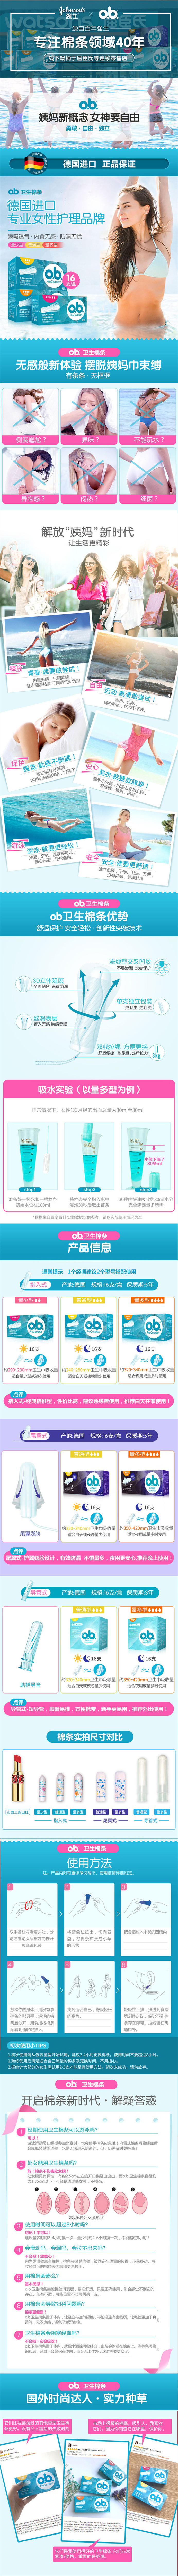 https://xiaoba.shall-buy.com/attachment/images/13938/2020/02/Dc20HHt2N0s9m9nm0hZIiqN3m32zd9.jpg